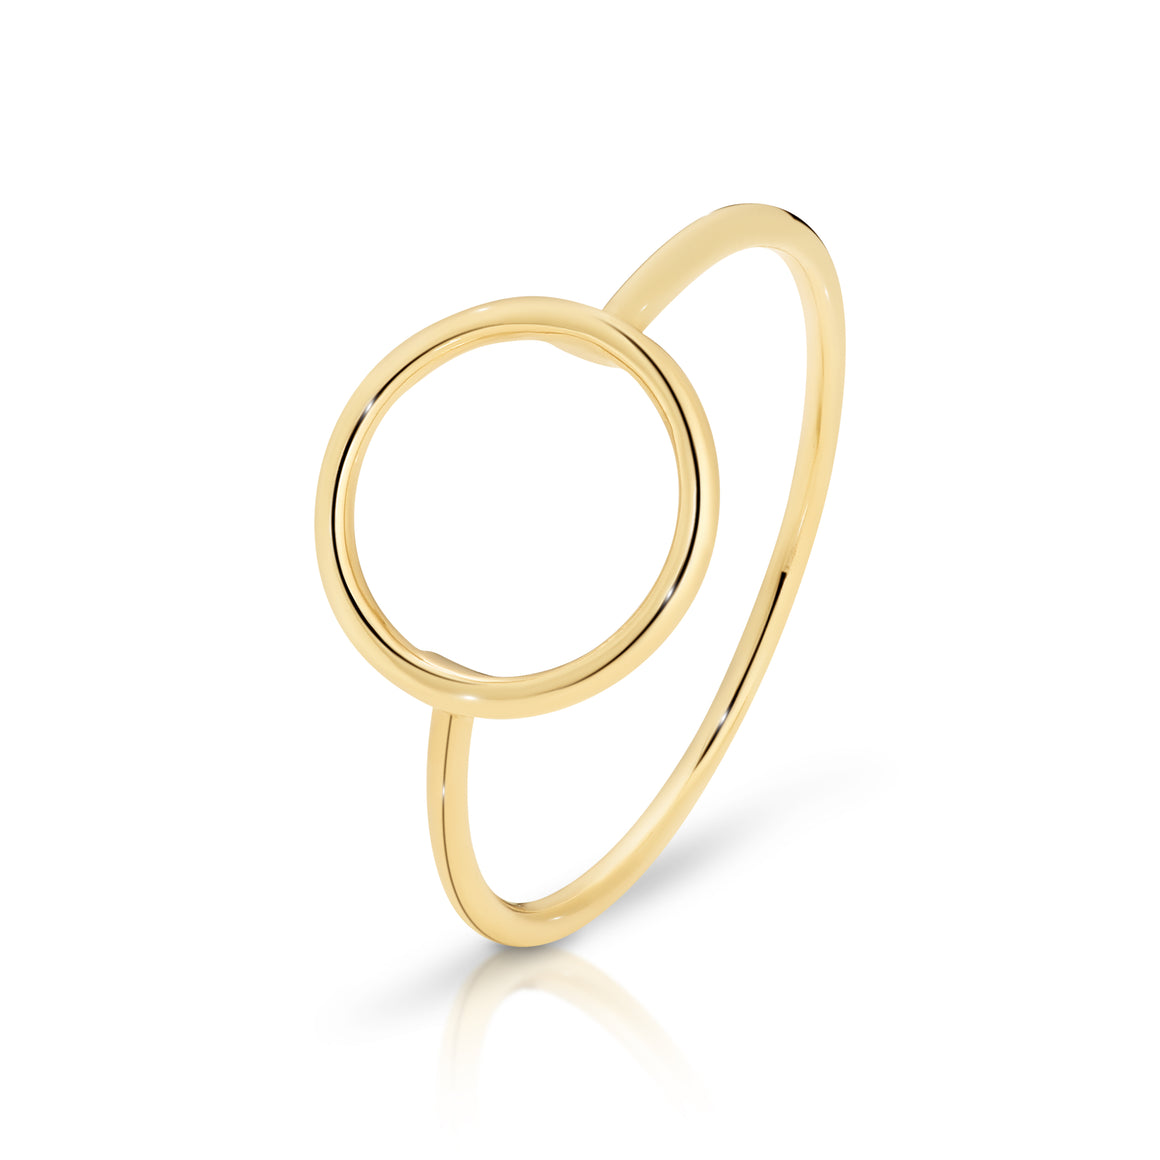 9ct Gold 'Liberty' Ring - Gemma Stone  ABN:51 621 127 866